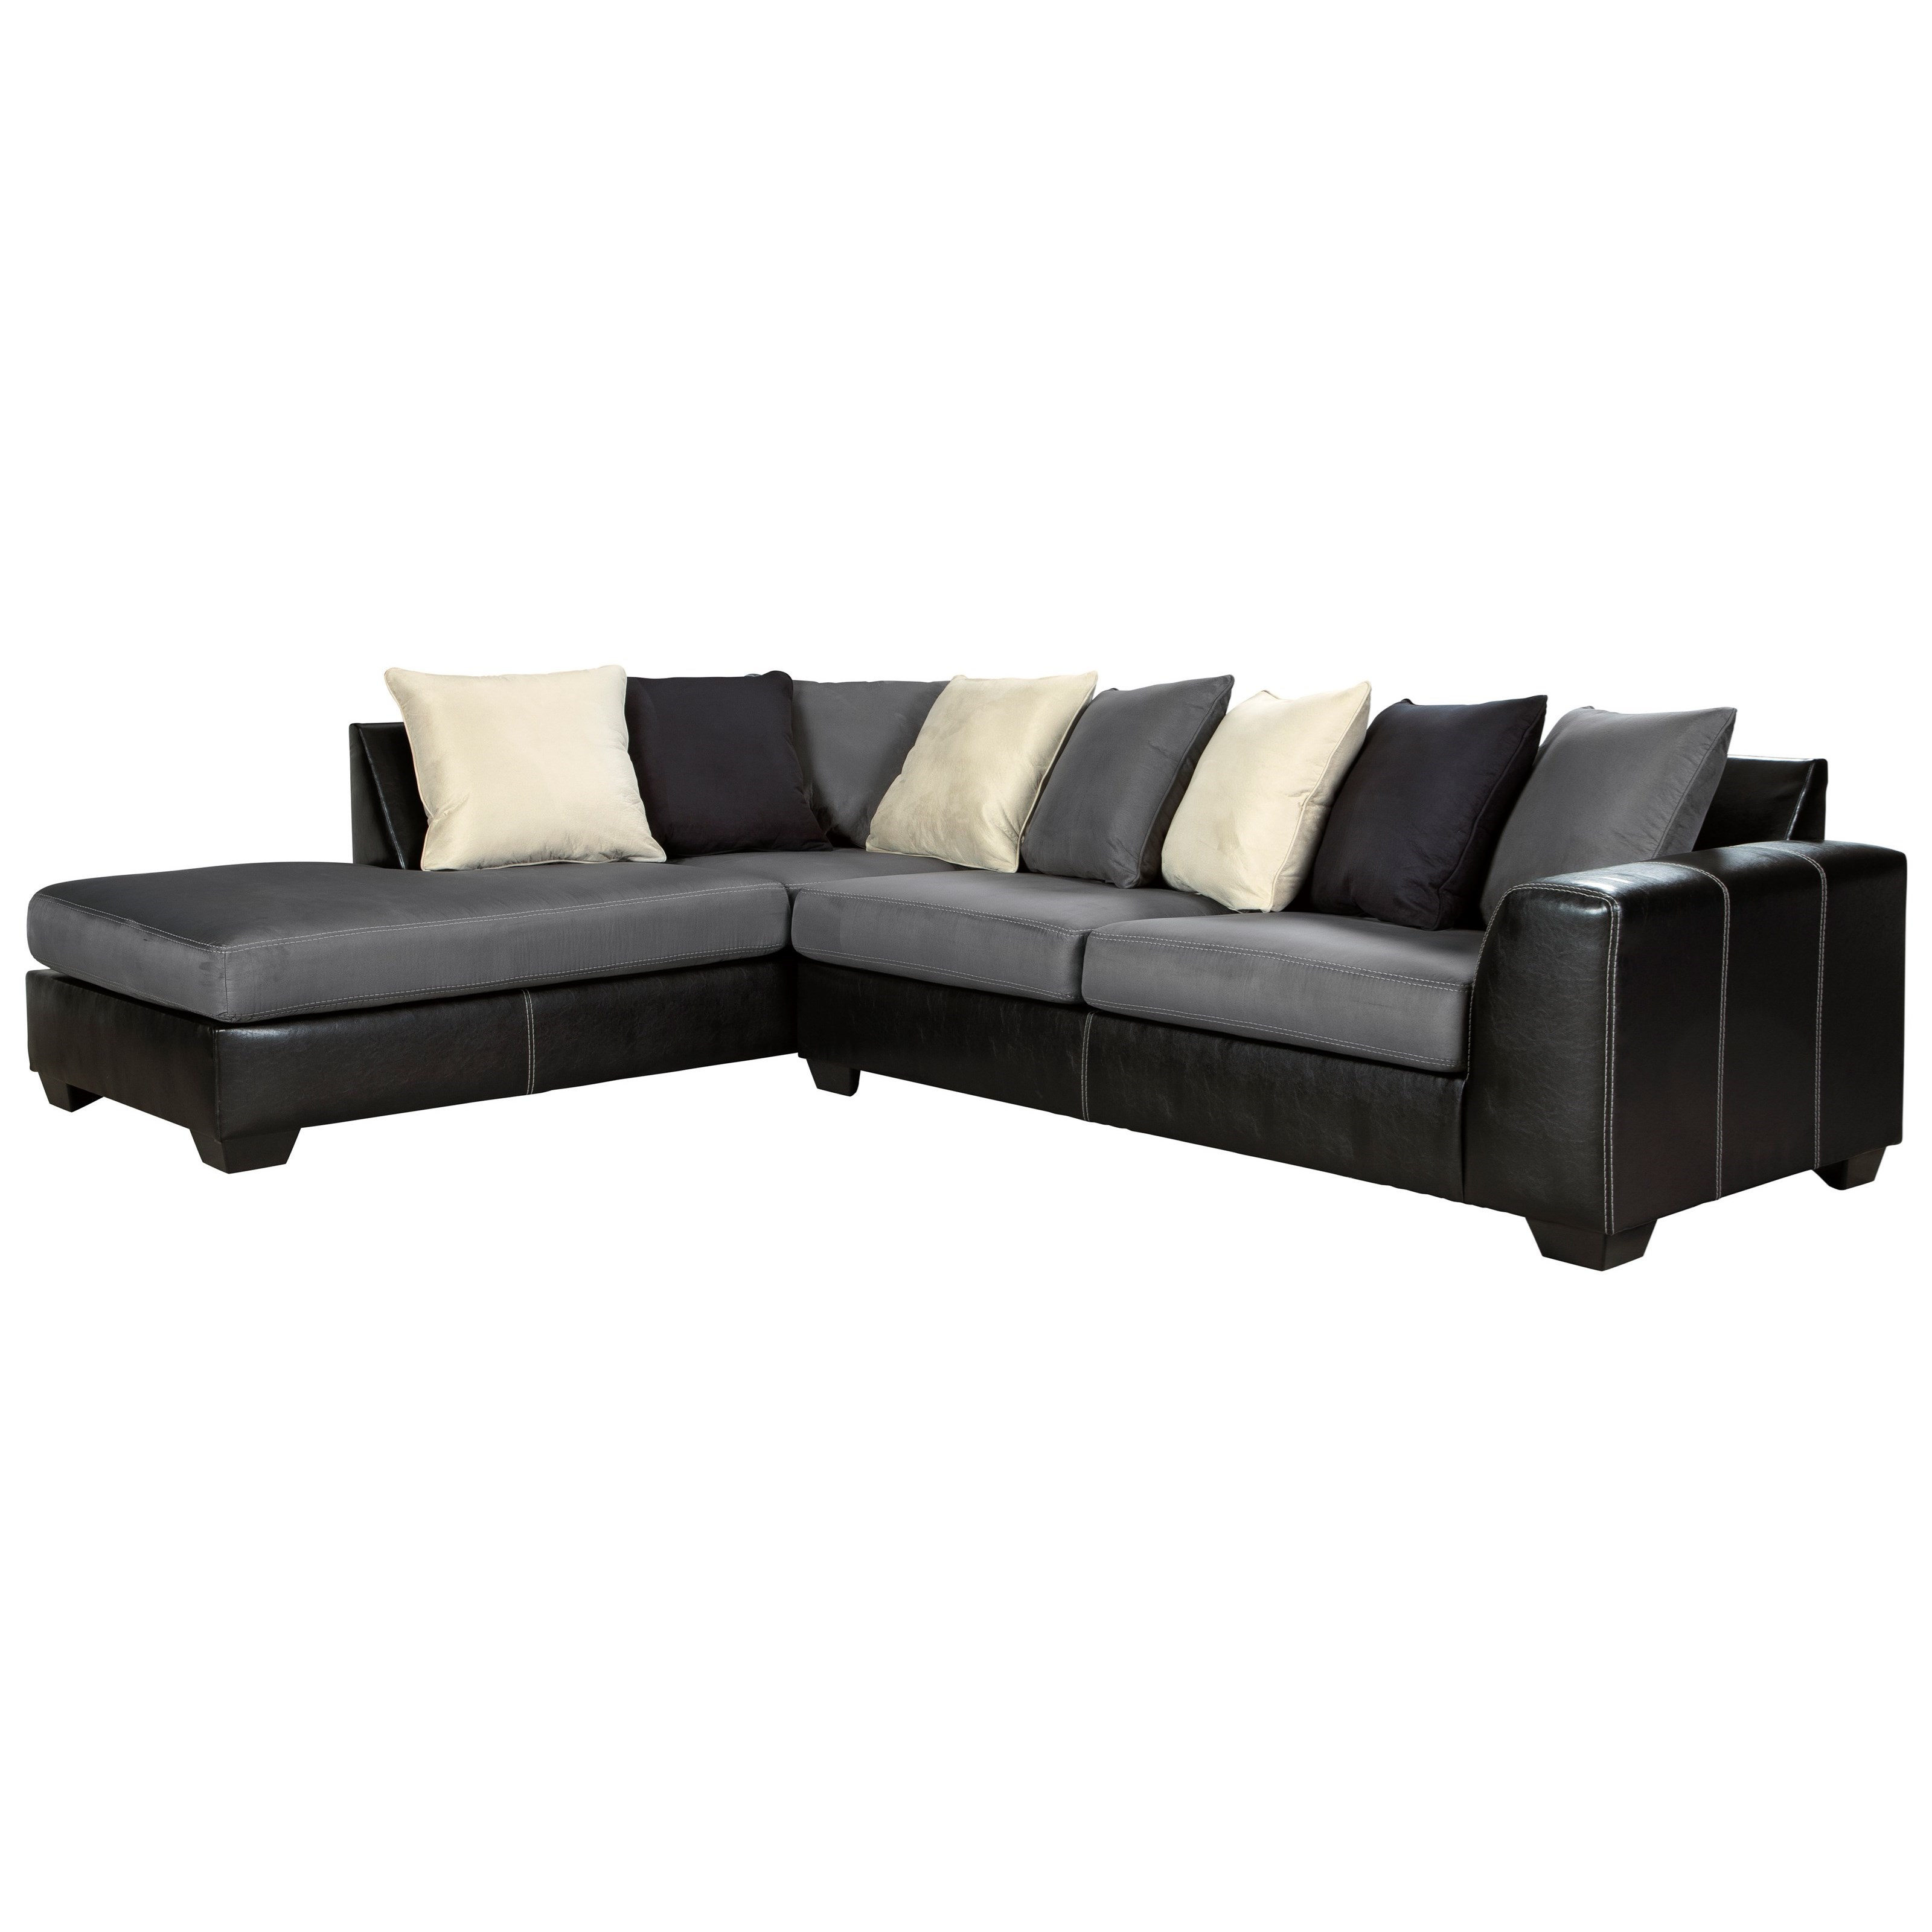 Sofa Modern Jacurso Contemporary Sectional Sofa With Chaise By Signature Design By Ashley At Furniture And Appliancemart